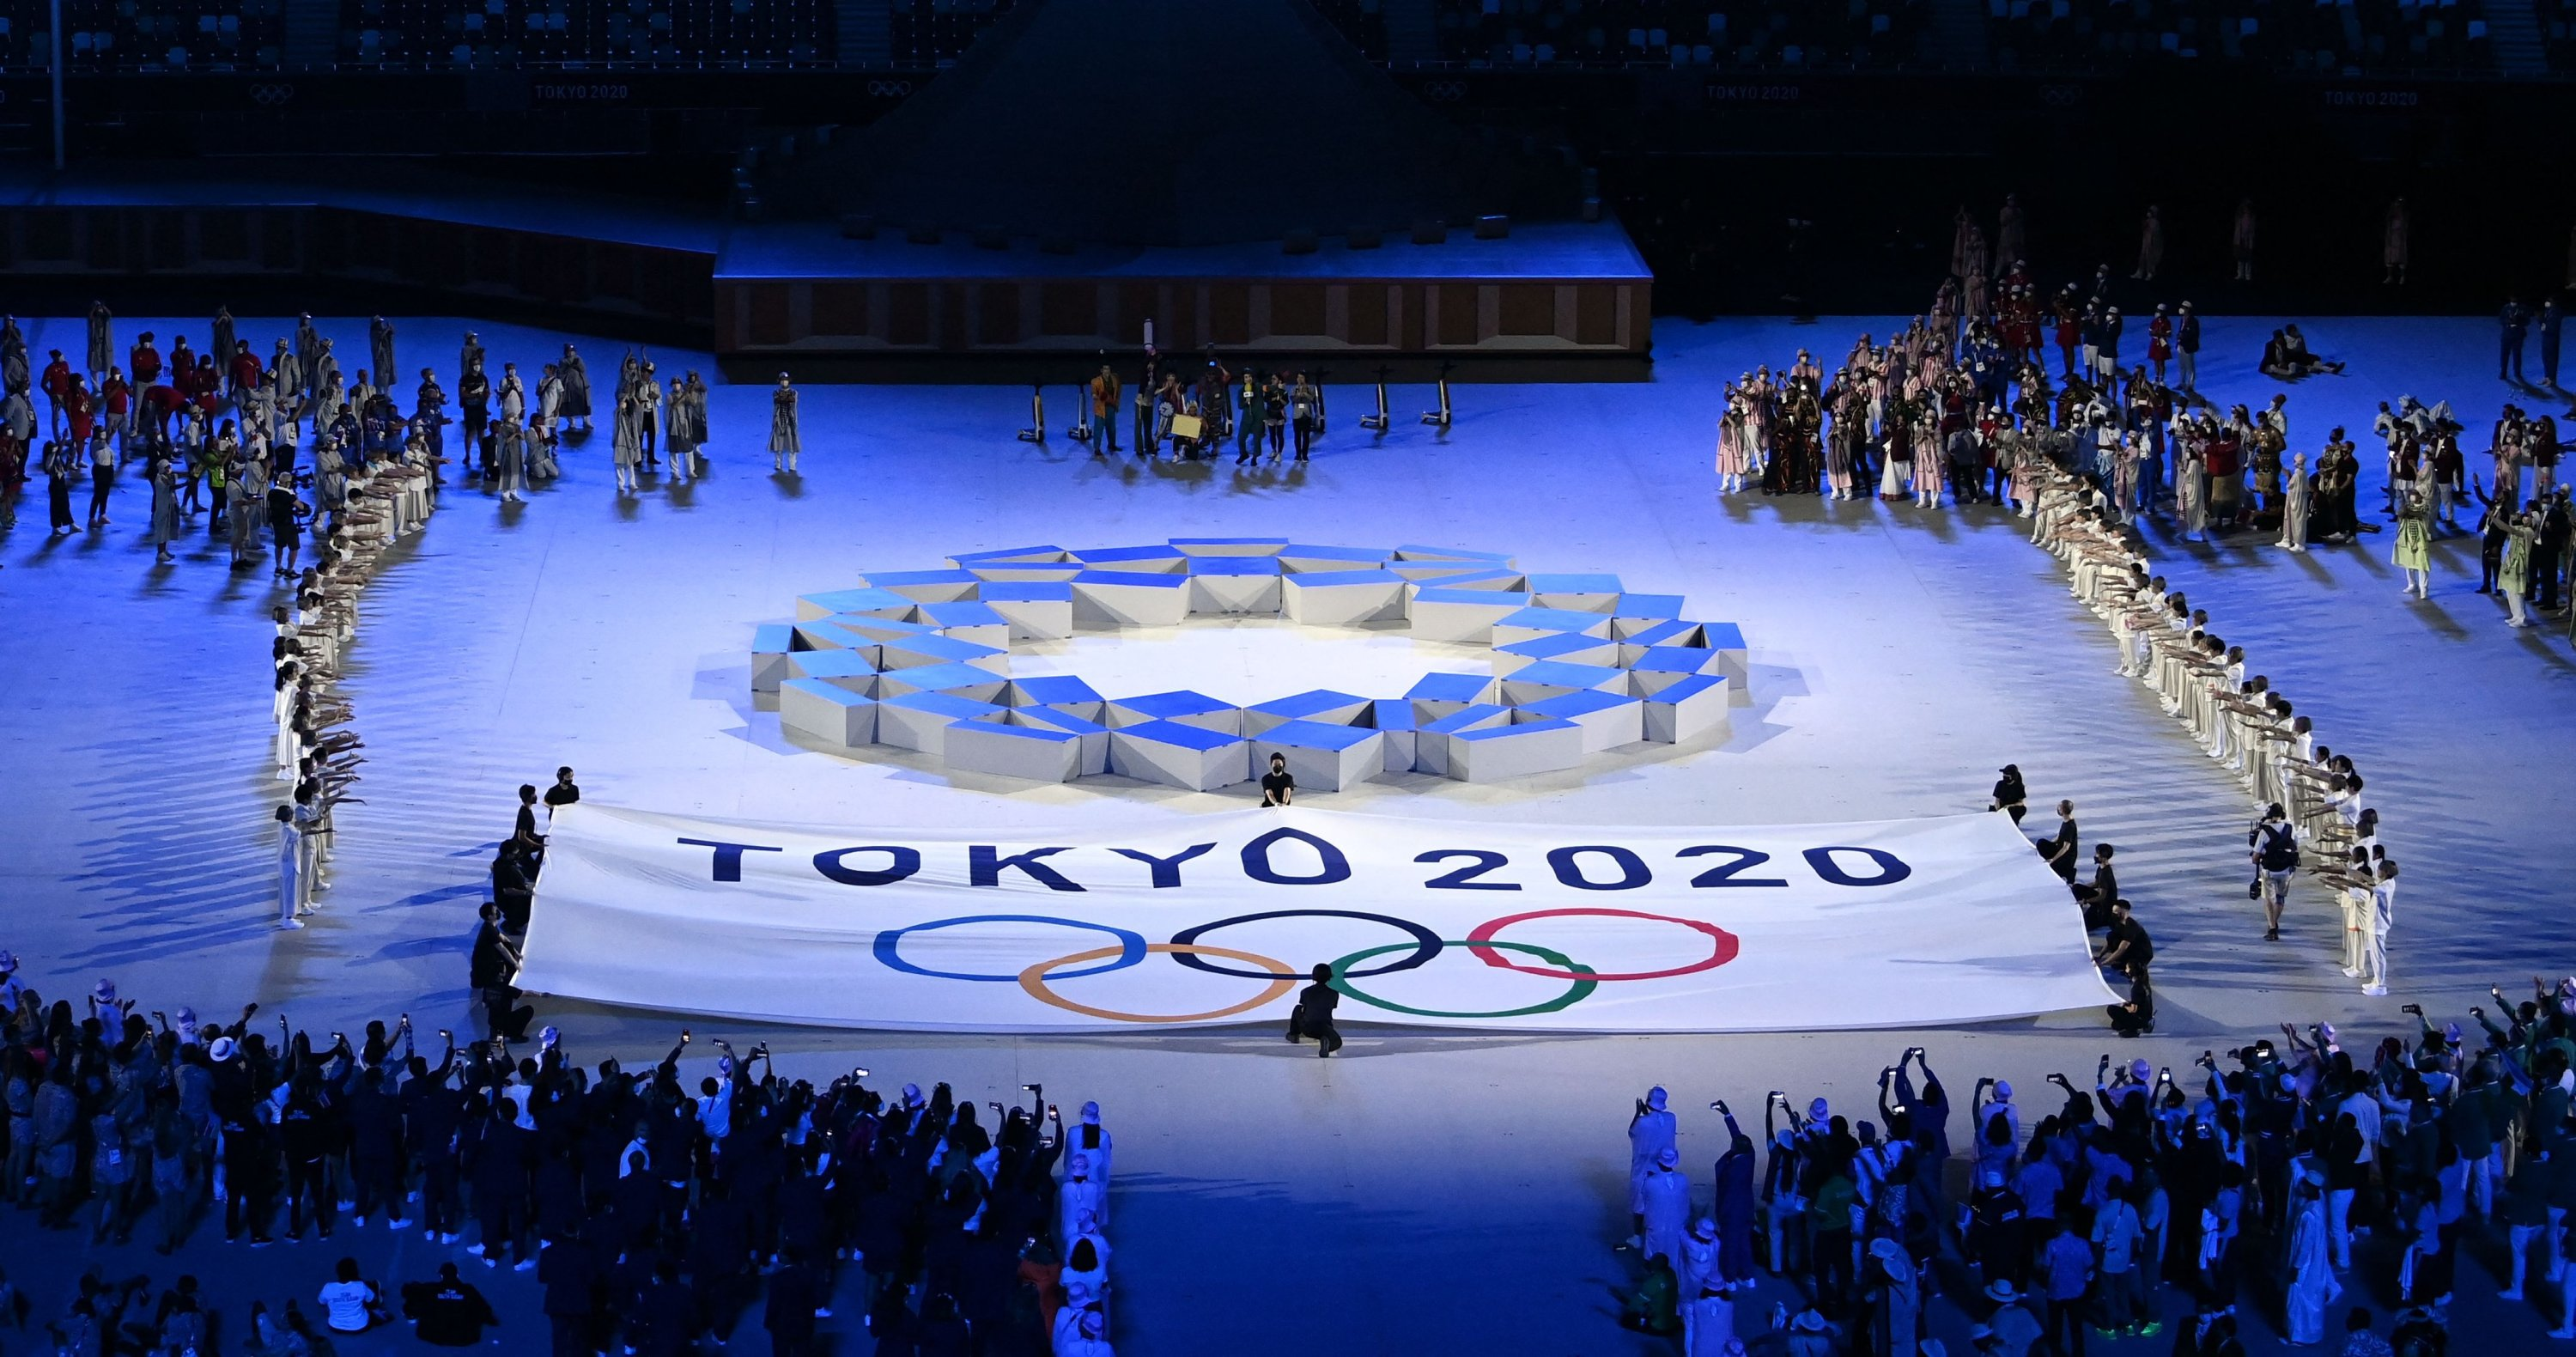 The Tokyo 2020 emblem is seen during the opening ceremony in the Olympic Stadium at the 2020 Summer Olympics, in Tokyo, Japan, July 23, 2021. (AFP Photo)